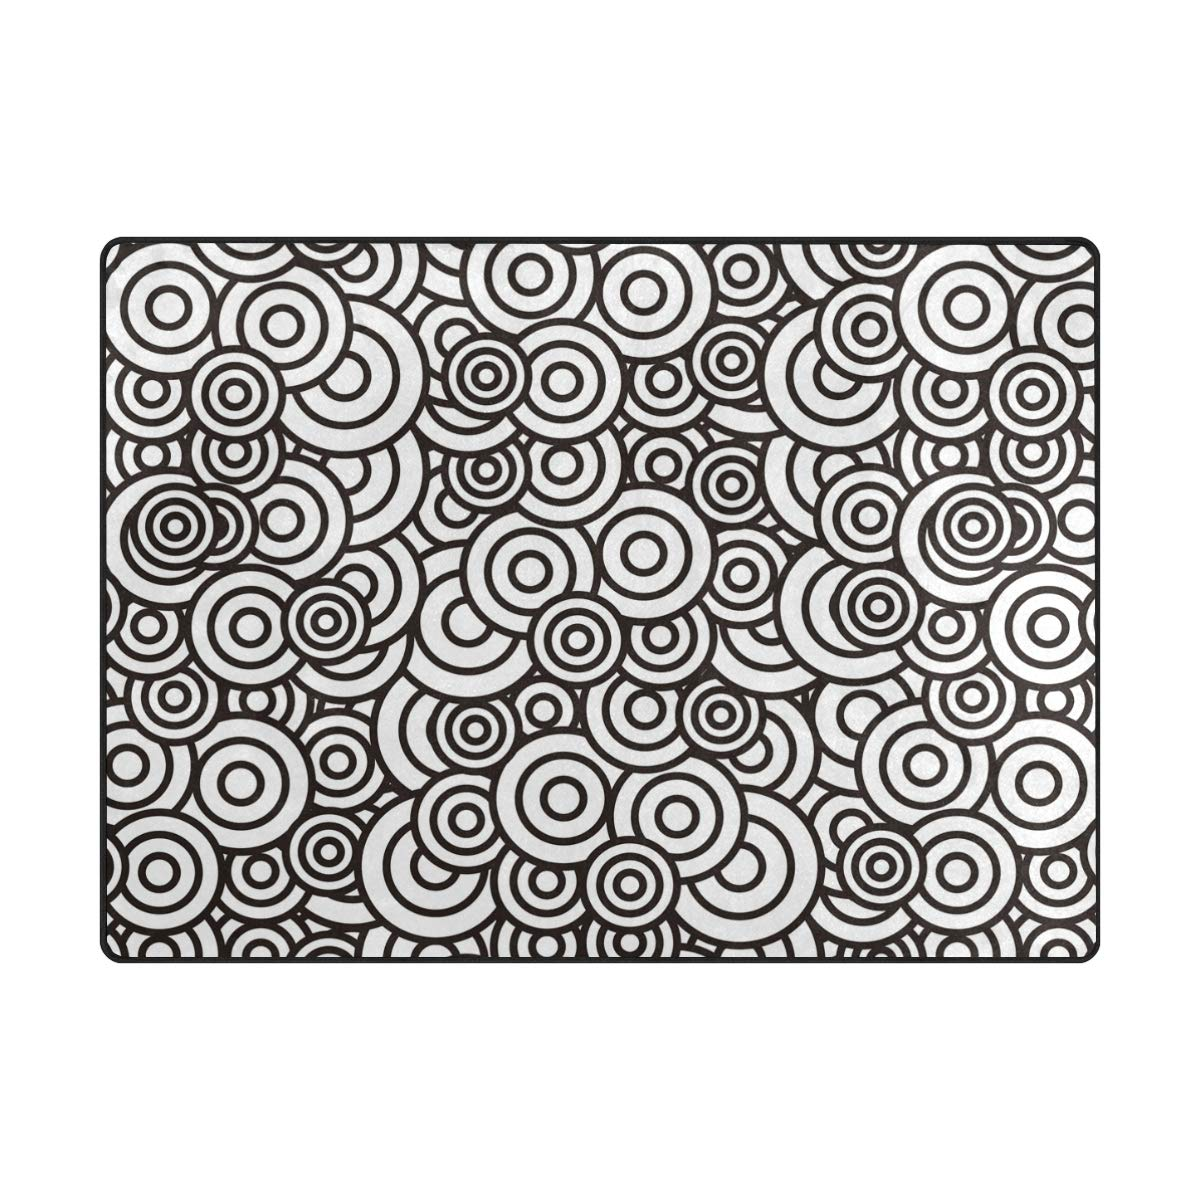 63 x 48 inch DEZIRO Round Cloud Black and White Polyester Doormat Area Rug Carpet Entry Way Floor Mats shoes Scraper Home Dec Anti-Slip Washable